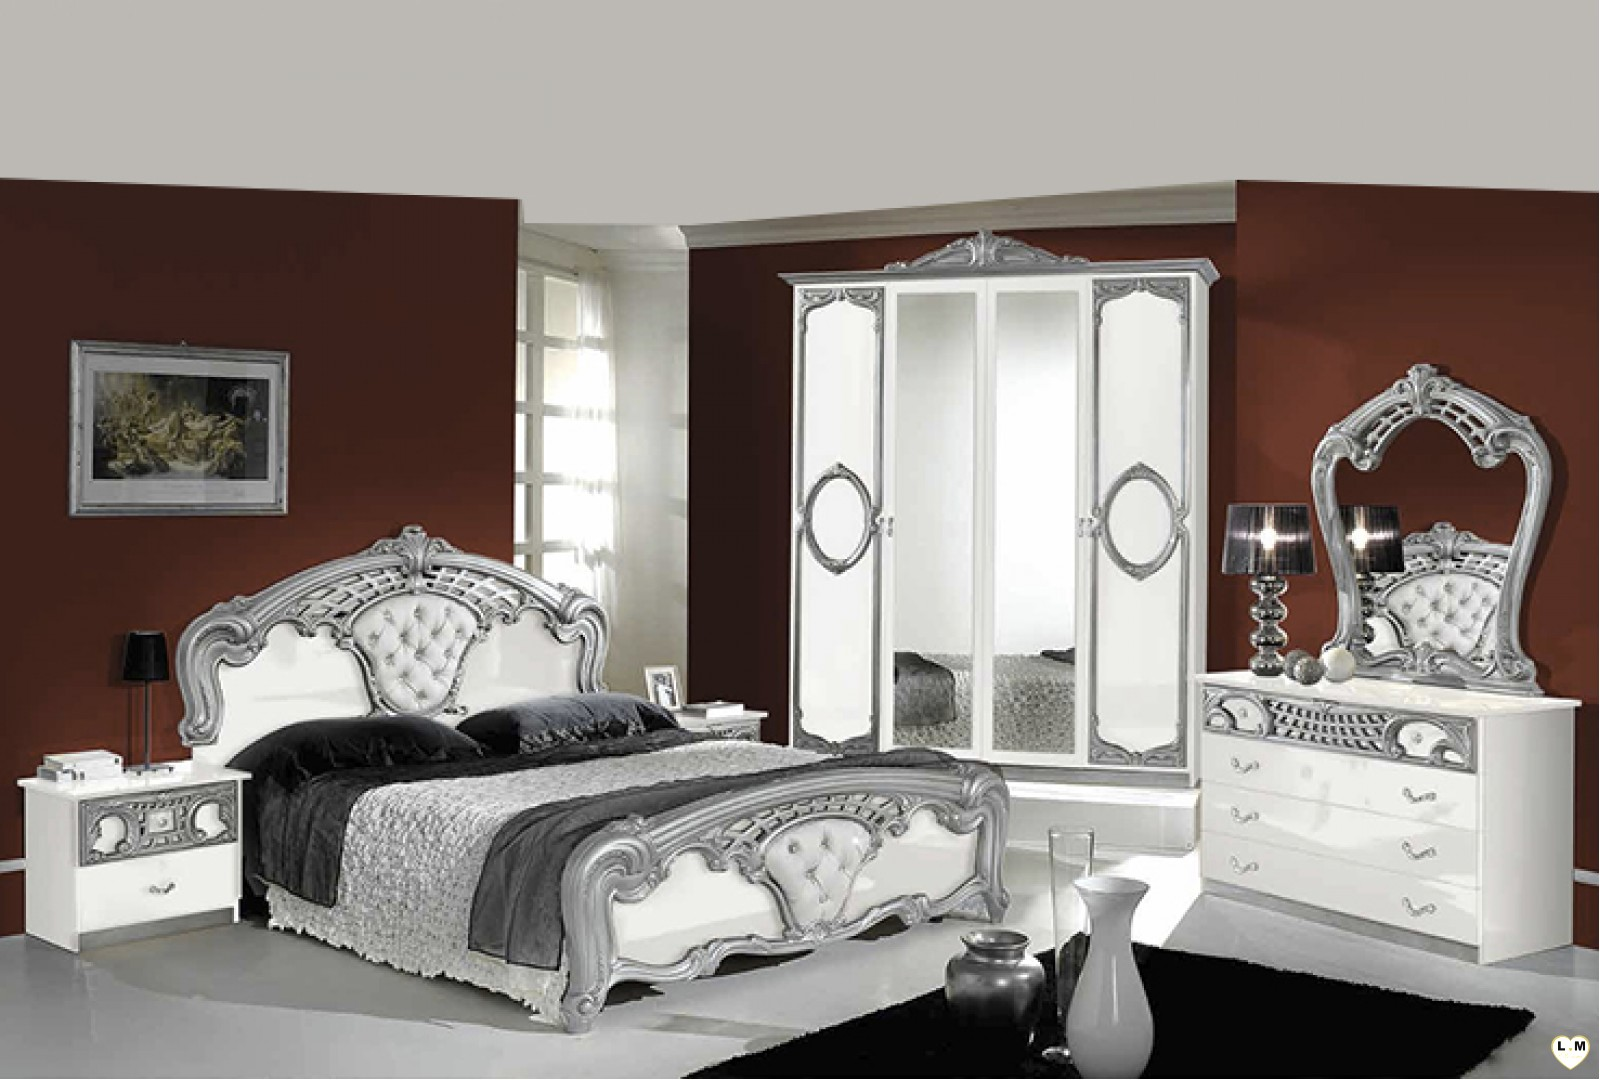 perfect natal laqu blanc et argent ensemble chambre coucher with chambre blanche et argente. Black Bedroom Furniture Sets. Home Design Ideas